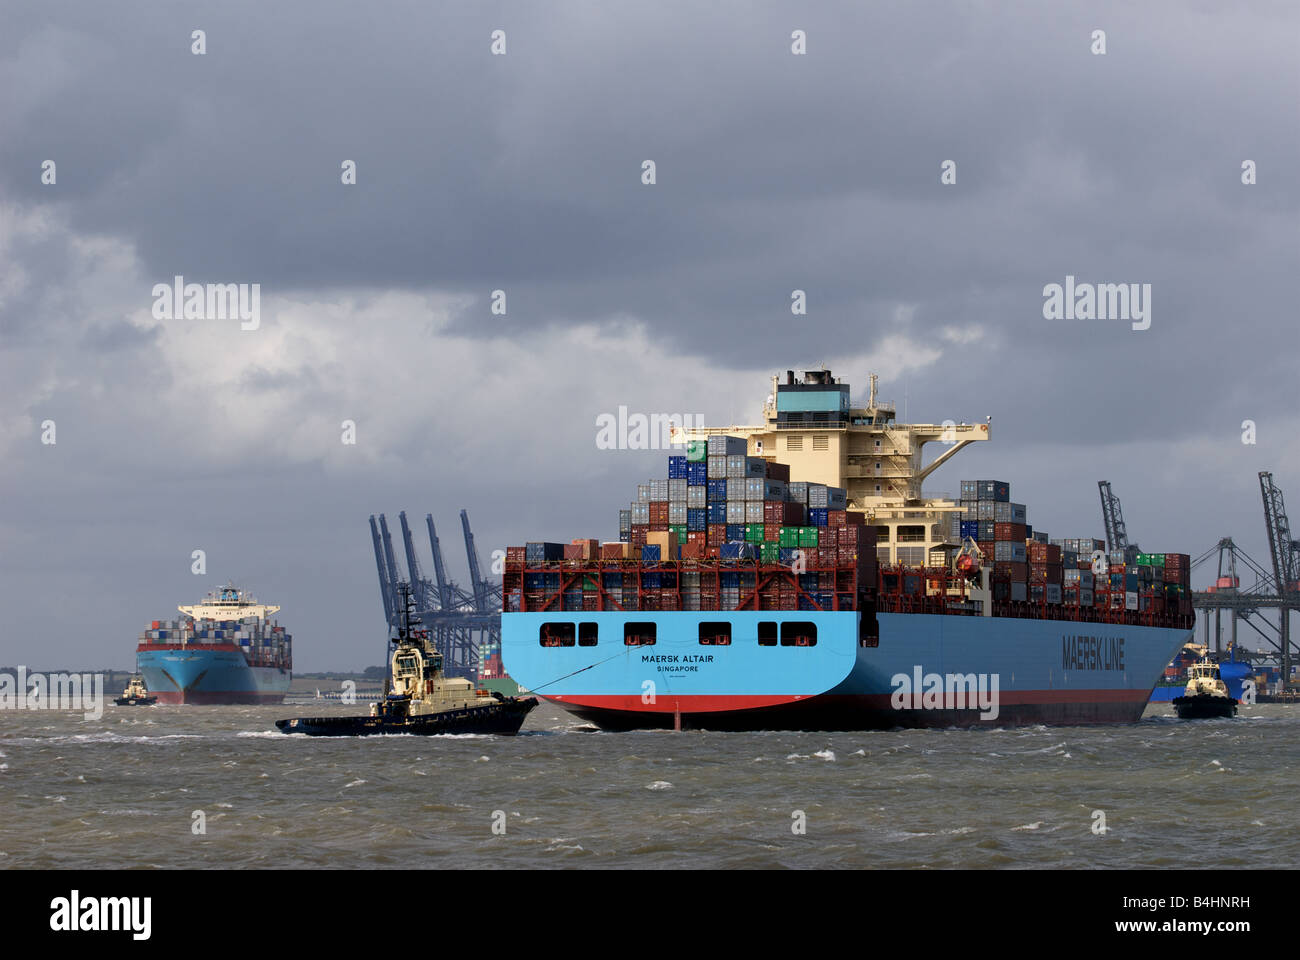 Containers ships arriving and departing the Port of Felixstowe, Suffolk, UK. - Stock Image